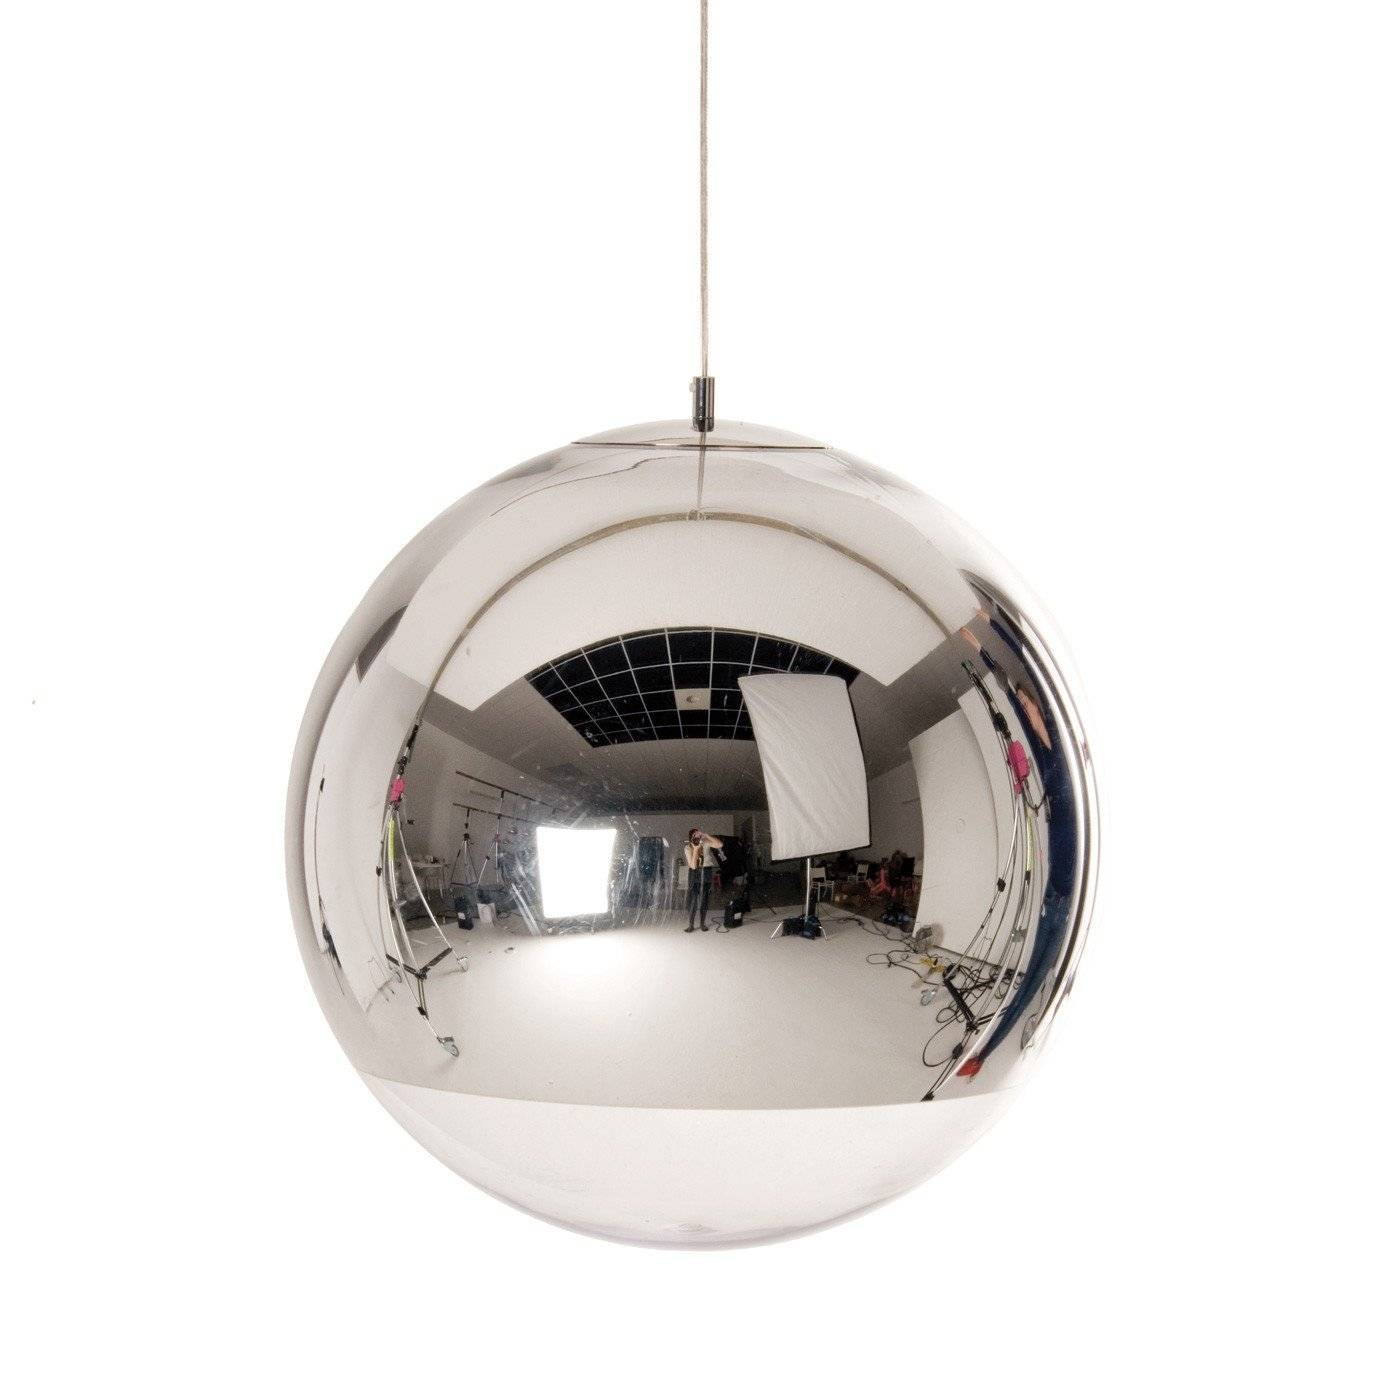 Mirror Ball Pendant Light throughout Disco Ball Ceiling Lights Fixtures (Image 13 of 15)